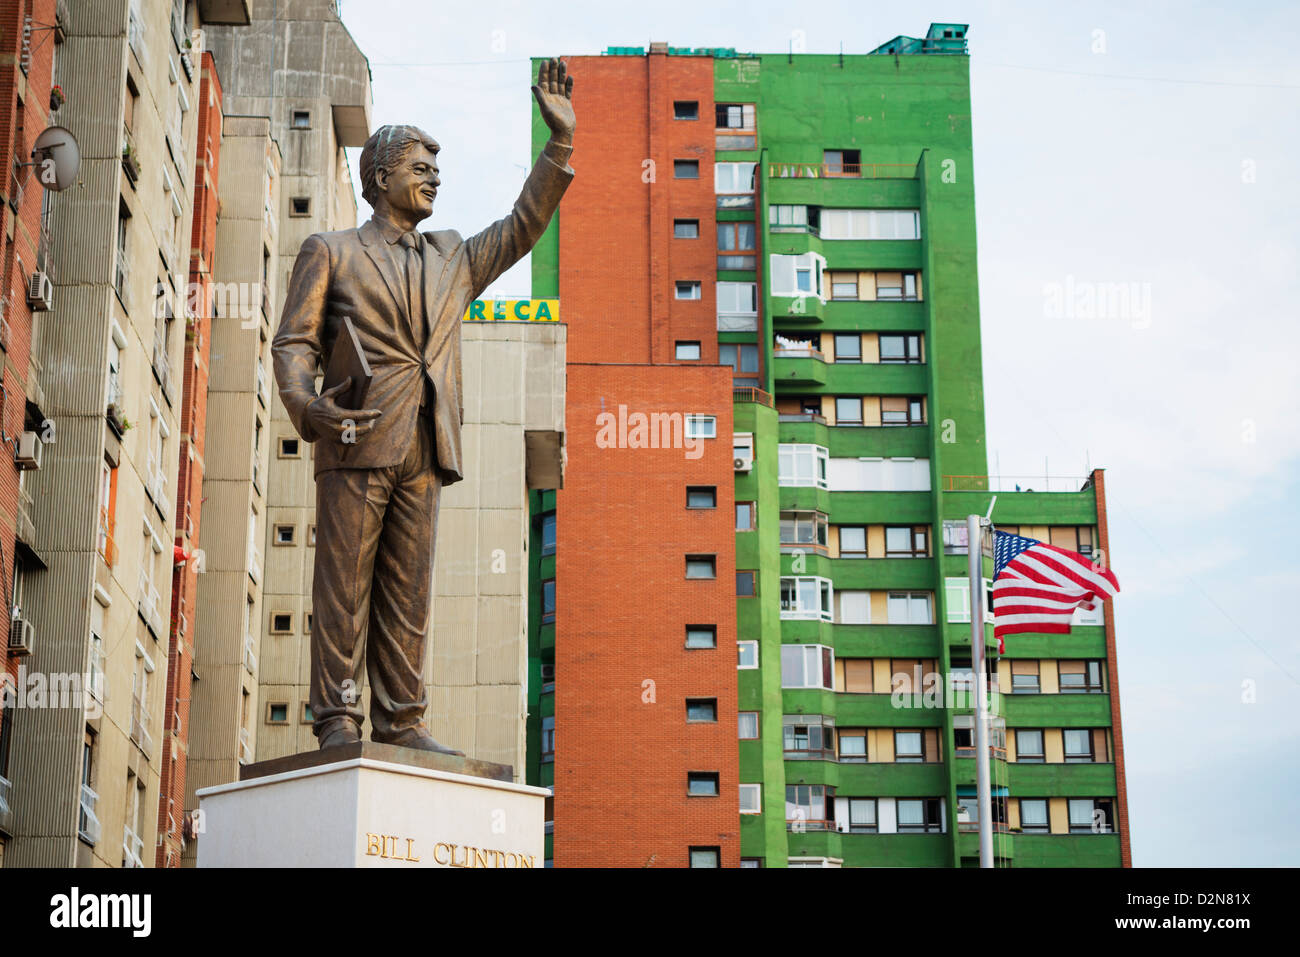 The Balkans, Kosovo, Pristina, Bill Clinton statue - Stock Image